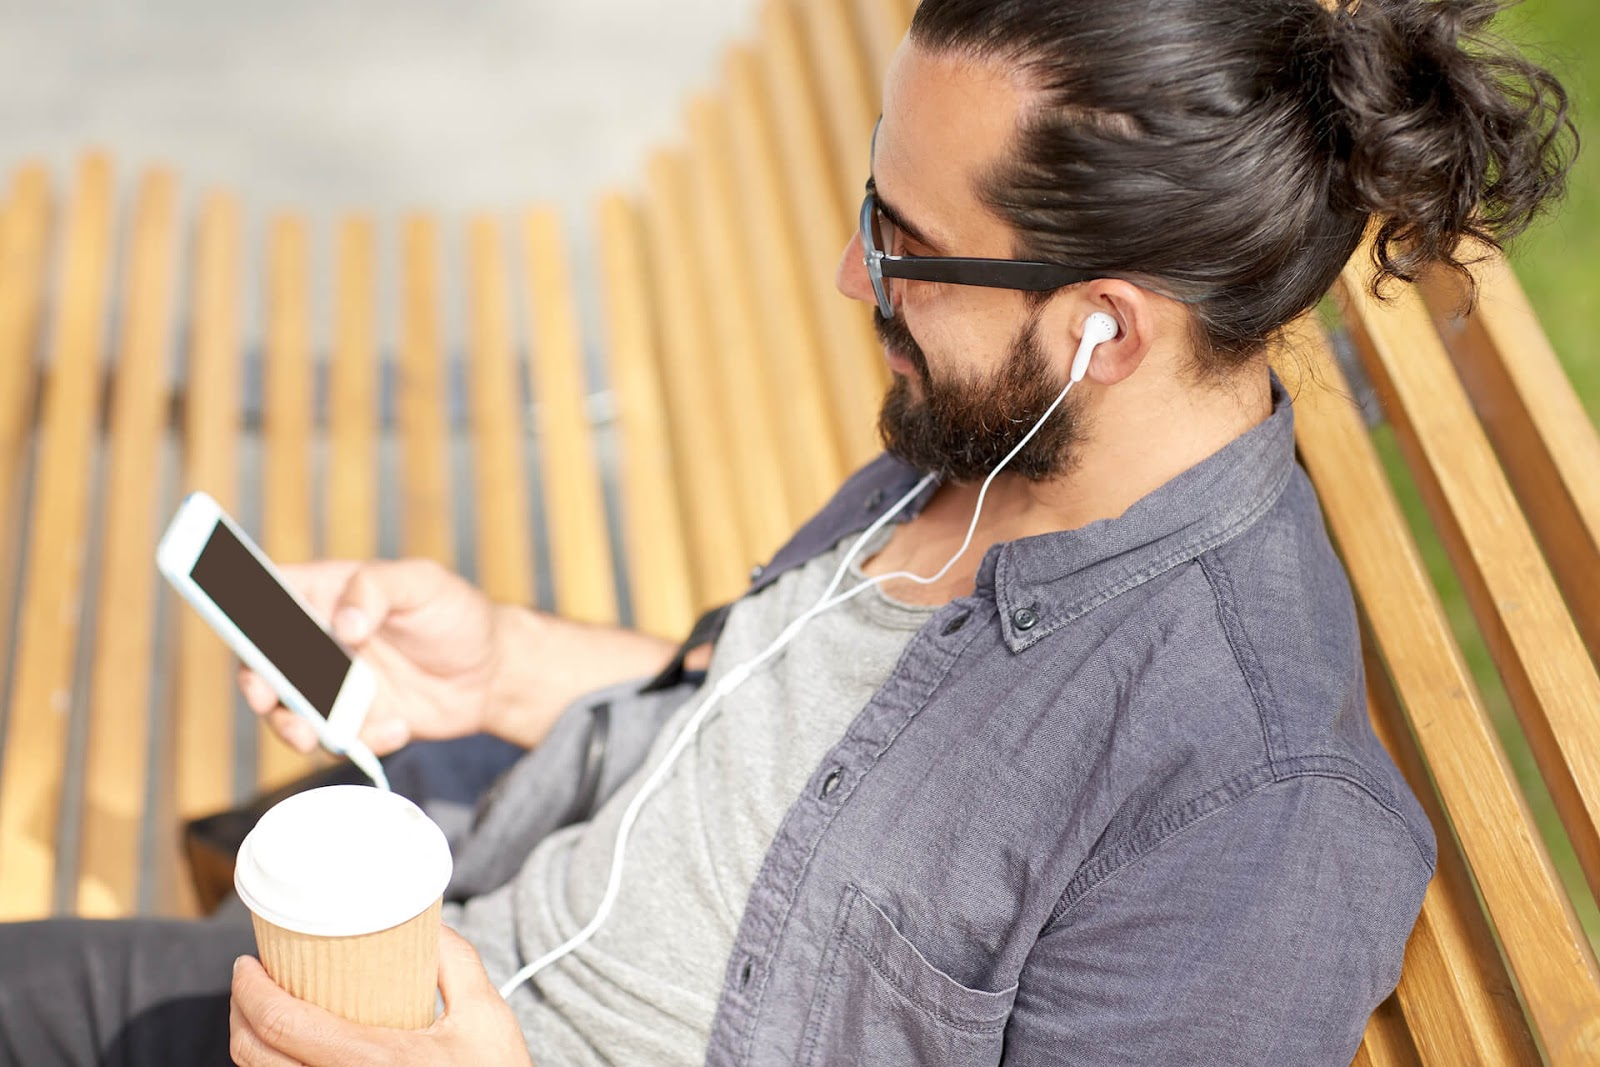 Man sitting on a bench with his headphones, looking at his phone